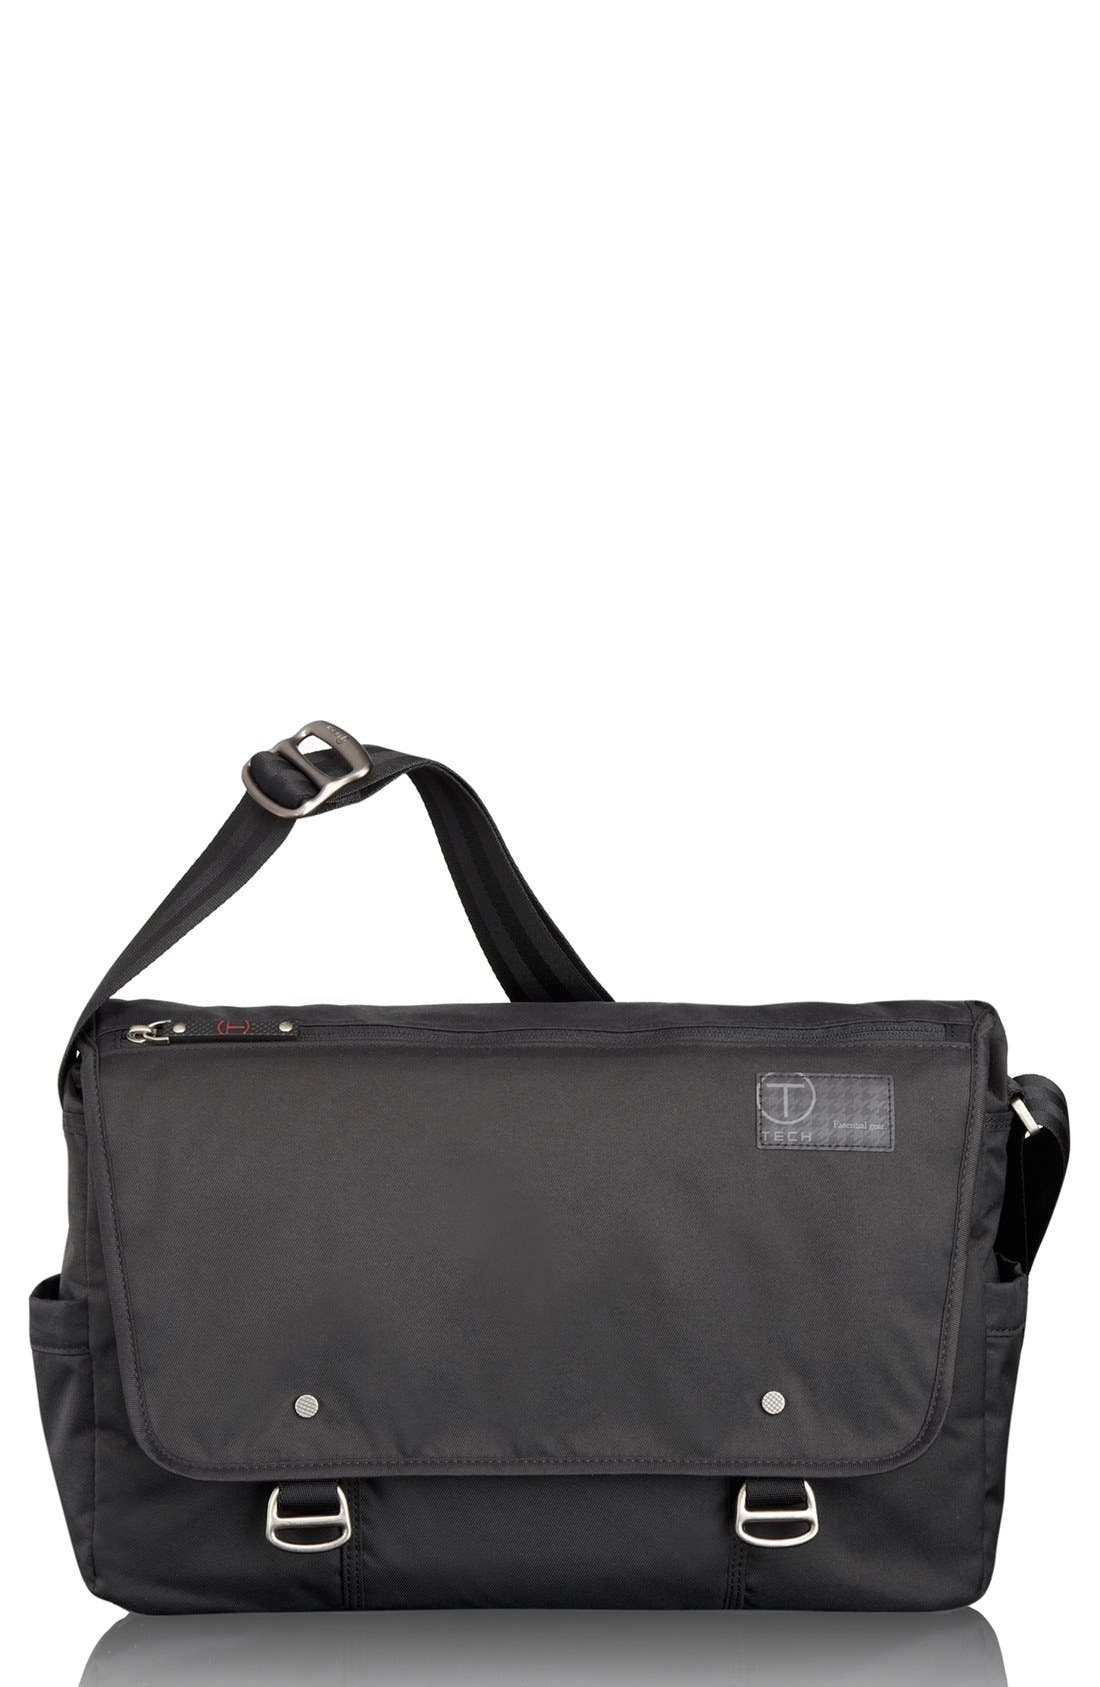 Main Image - T-Tech by Tumi 'Icon - Usher' Messenger Bag